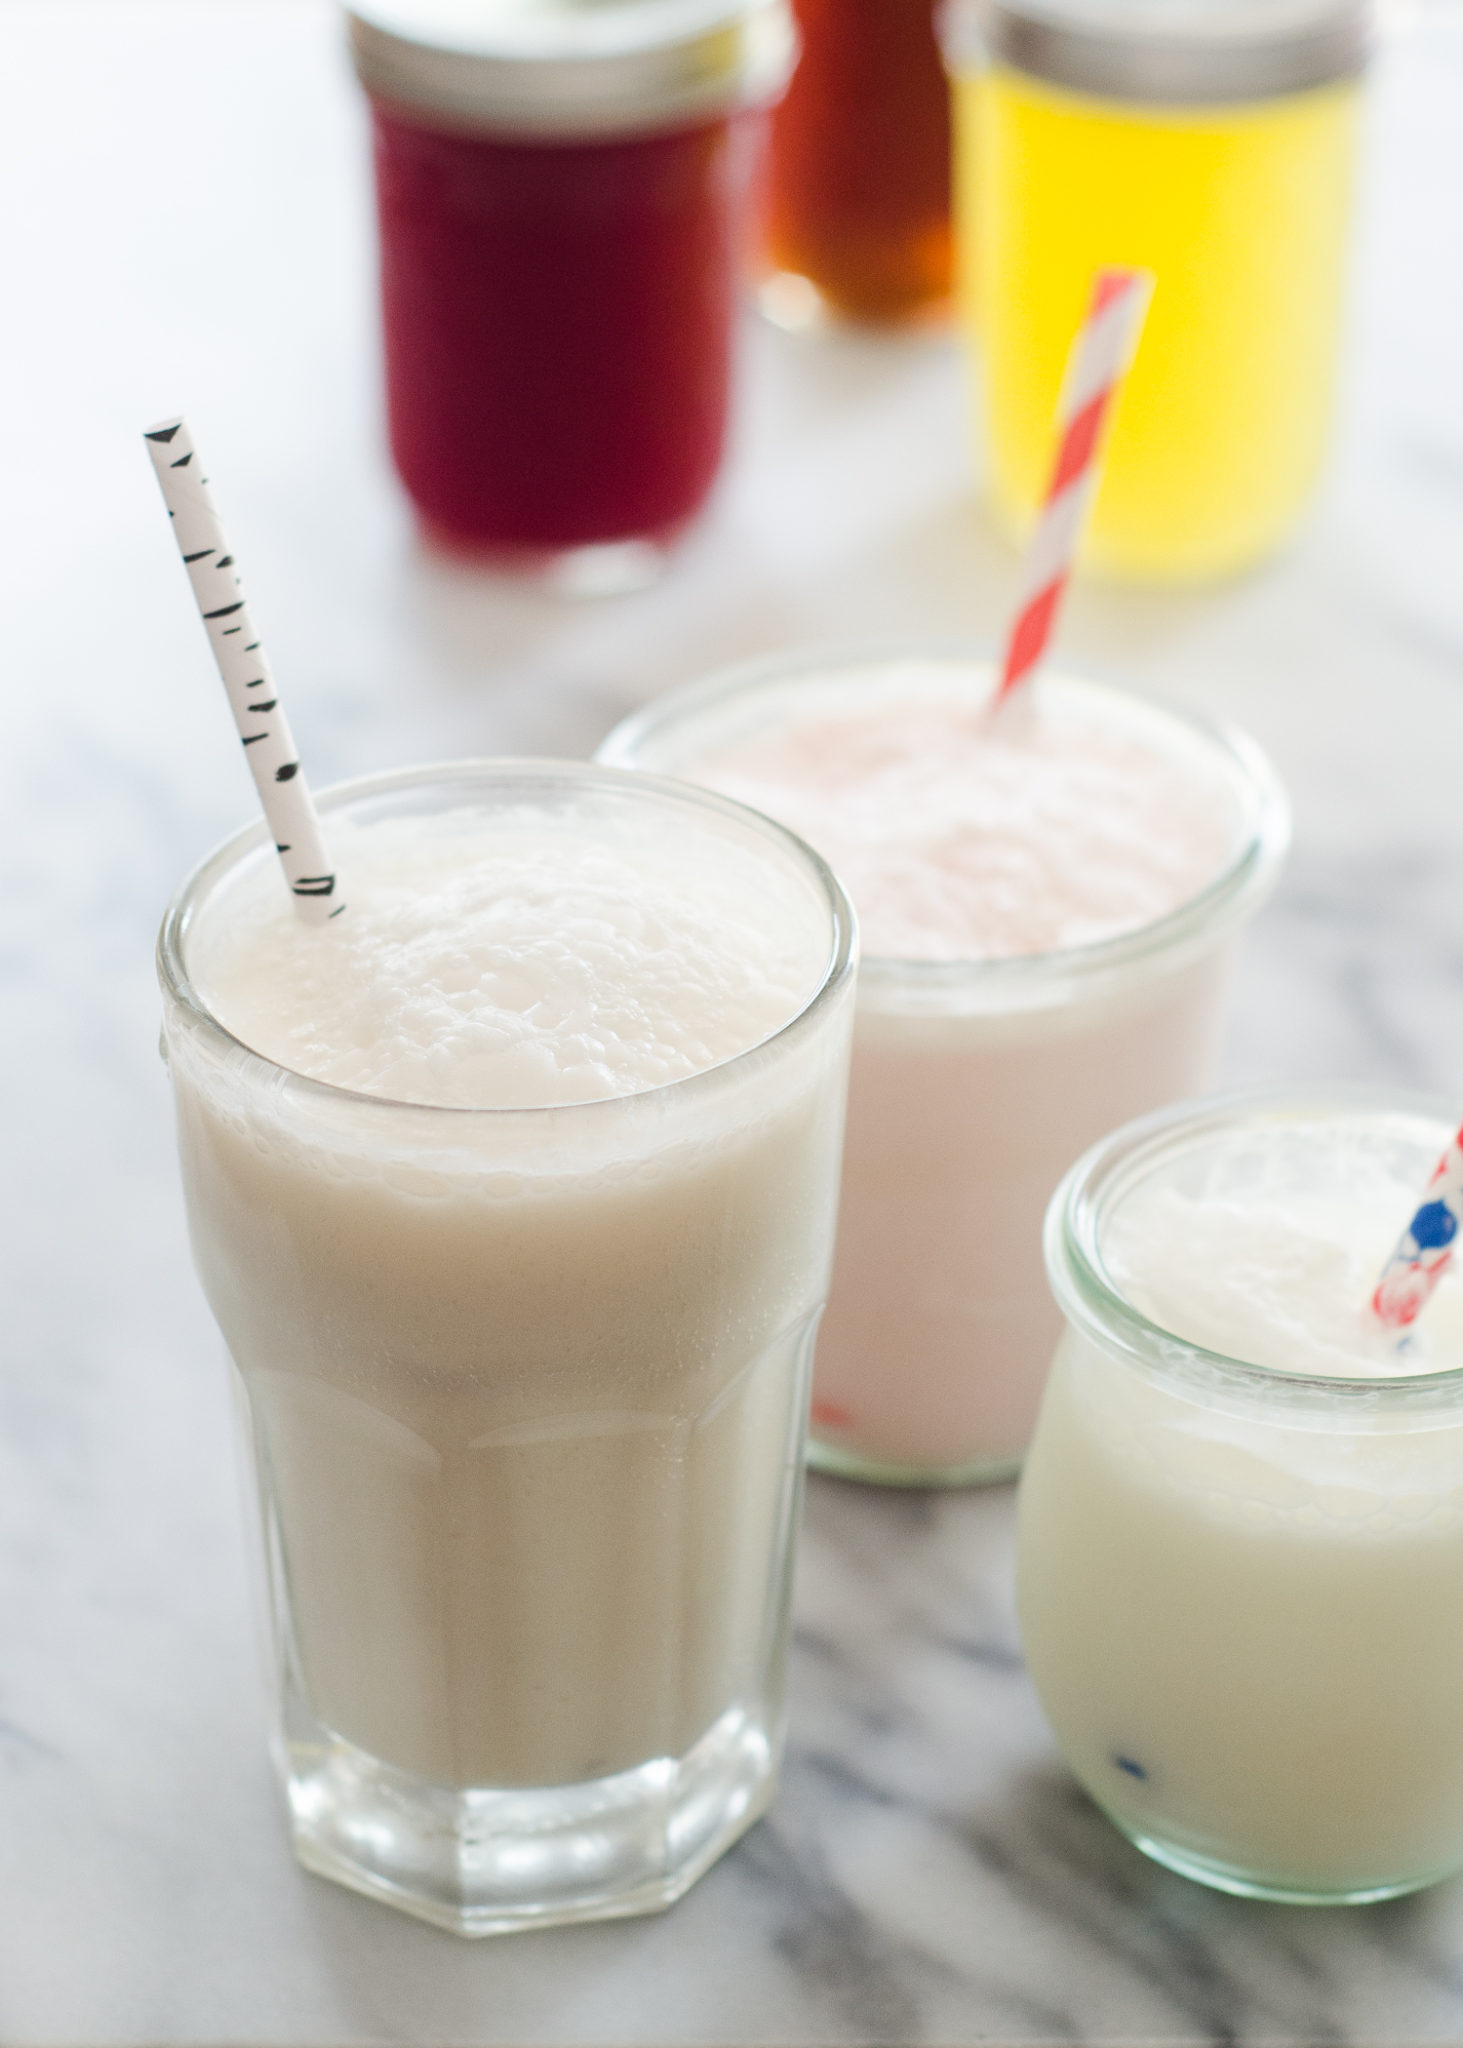 Homemade Cream Sodas